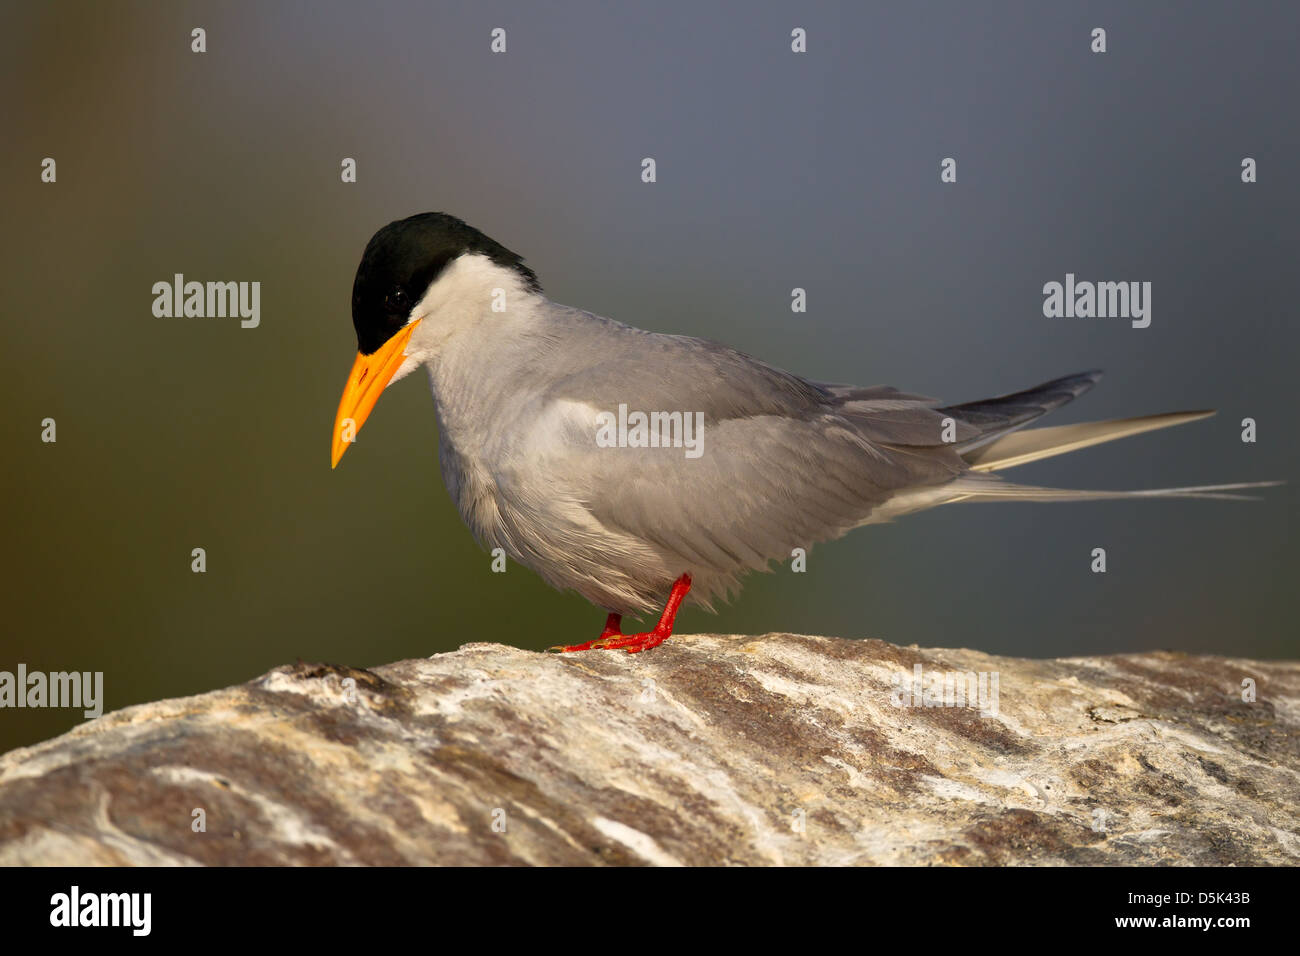 river tern sitting on a rock stained white with bird droppings with sky as background - Stock Image